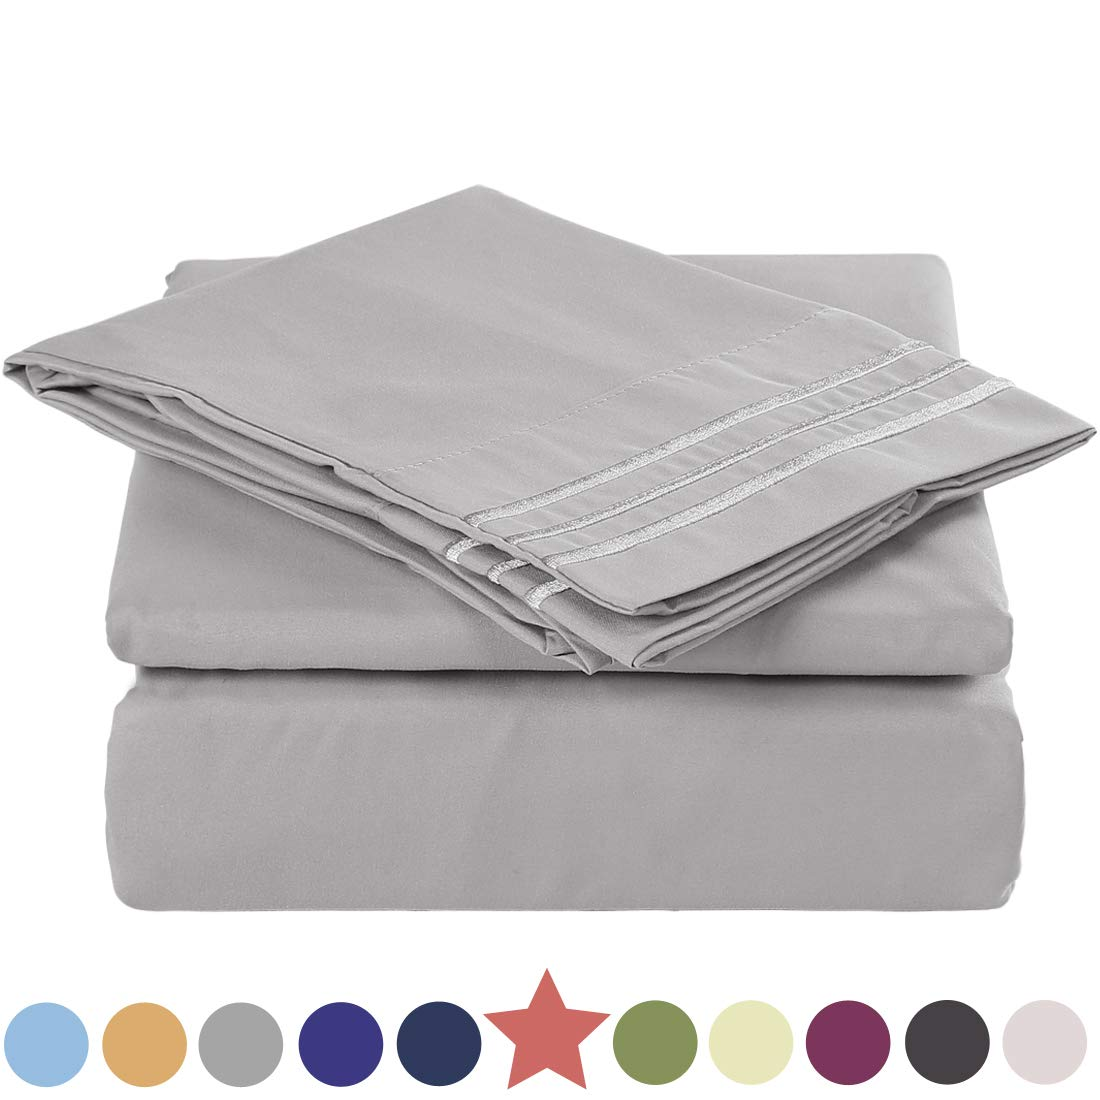 TEKAMON Premium 3 Piece Bed Sheet Set 1800TC Bedding 100% Microfiber Polyester - Super Soft, Warm, Breathable, Cooling, Wrinkle and Fade Resistant - 10-16'' Extra Deep Pockets, Twin, Grey